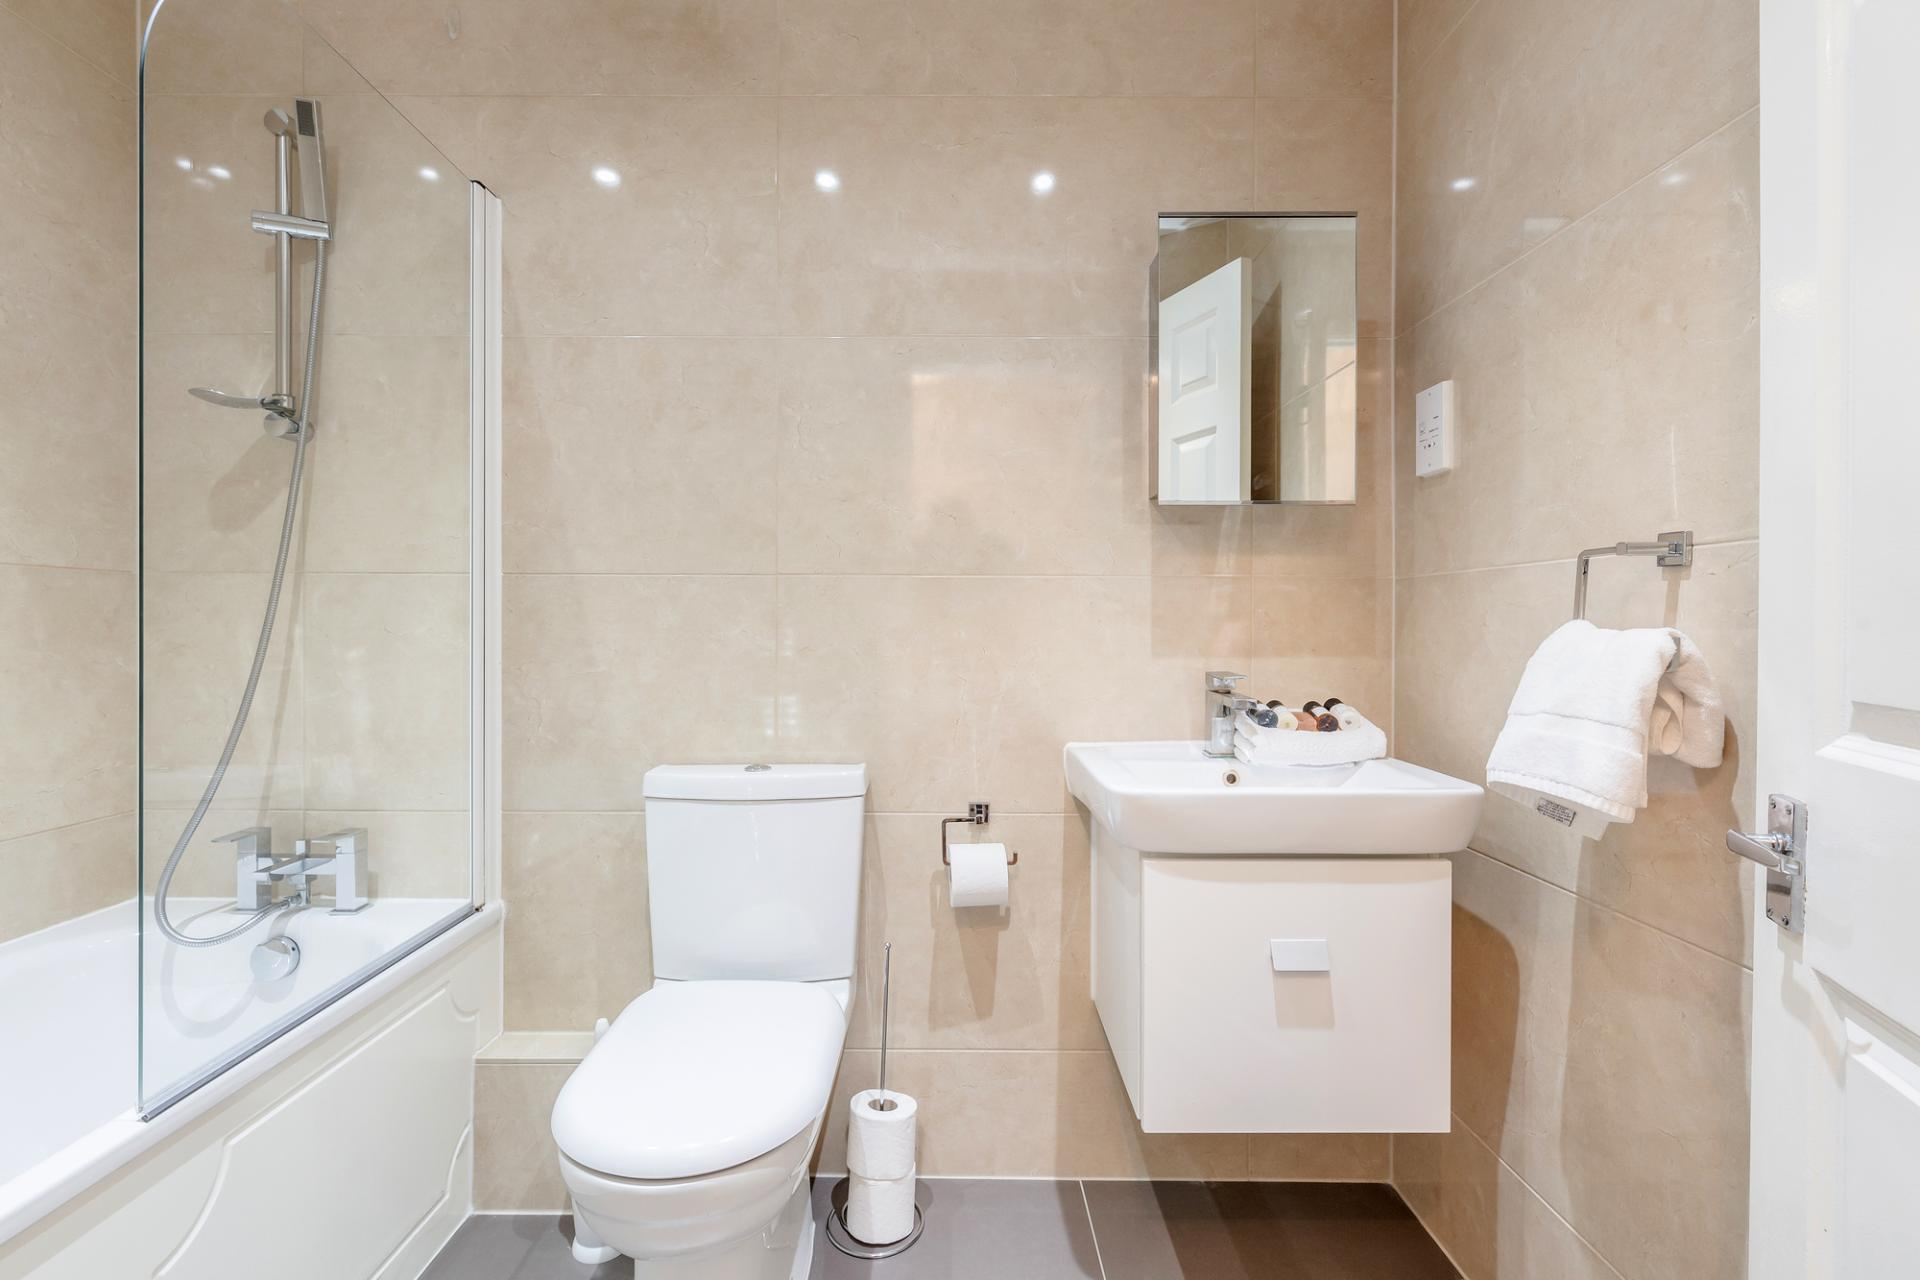 Bathroom at Regents Court, Kingston upon Thames, London